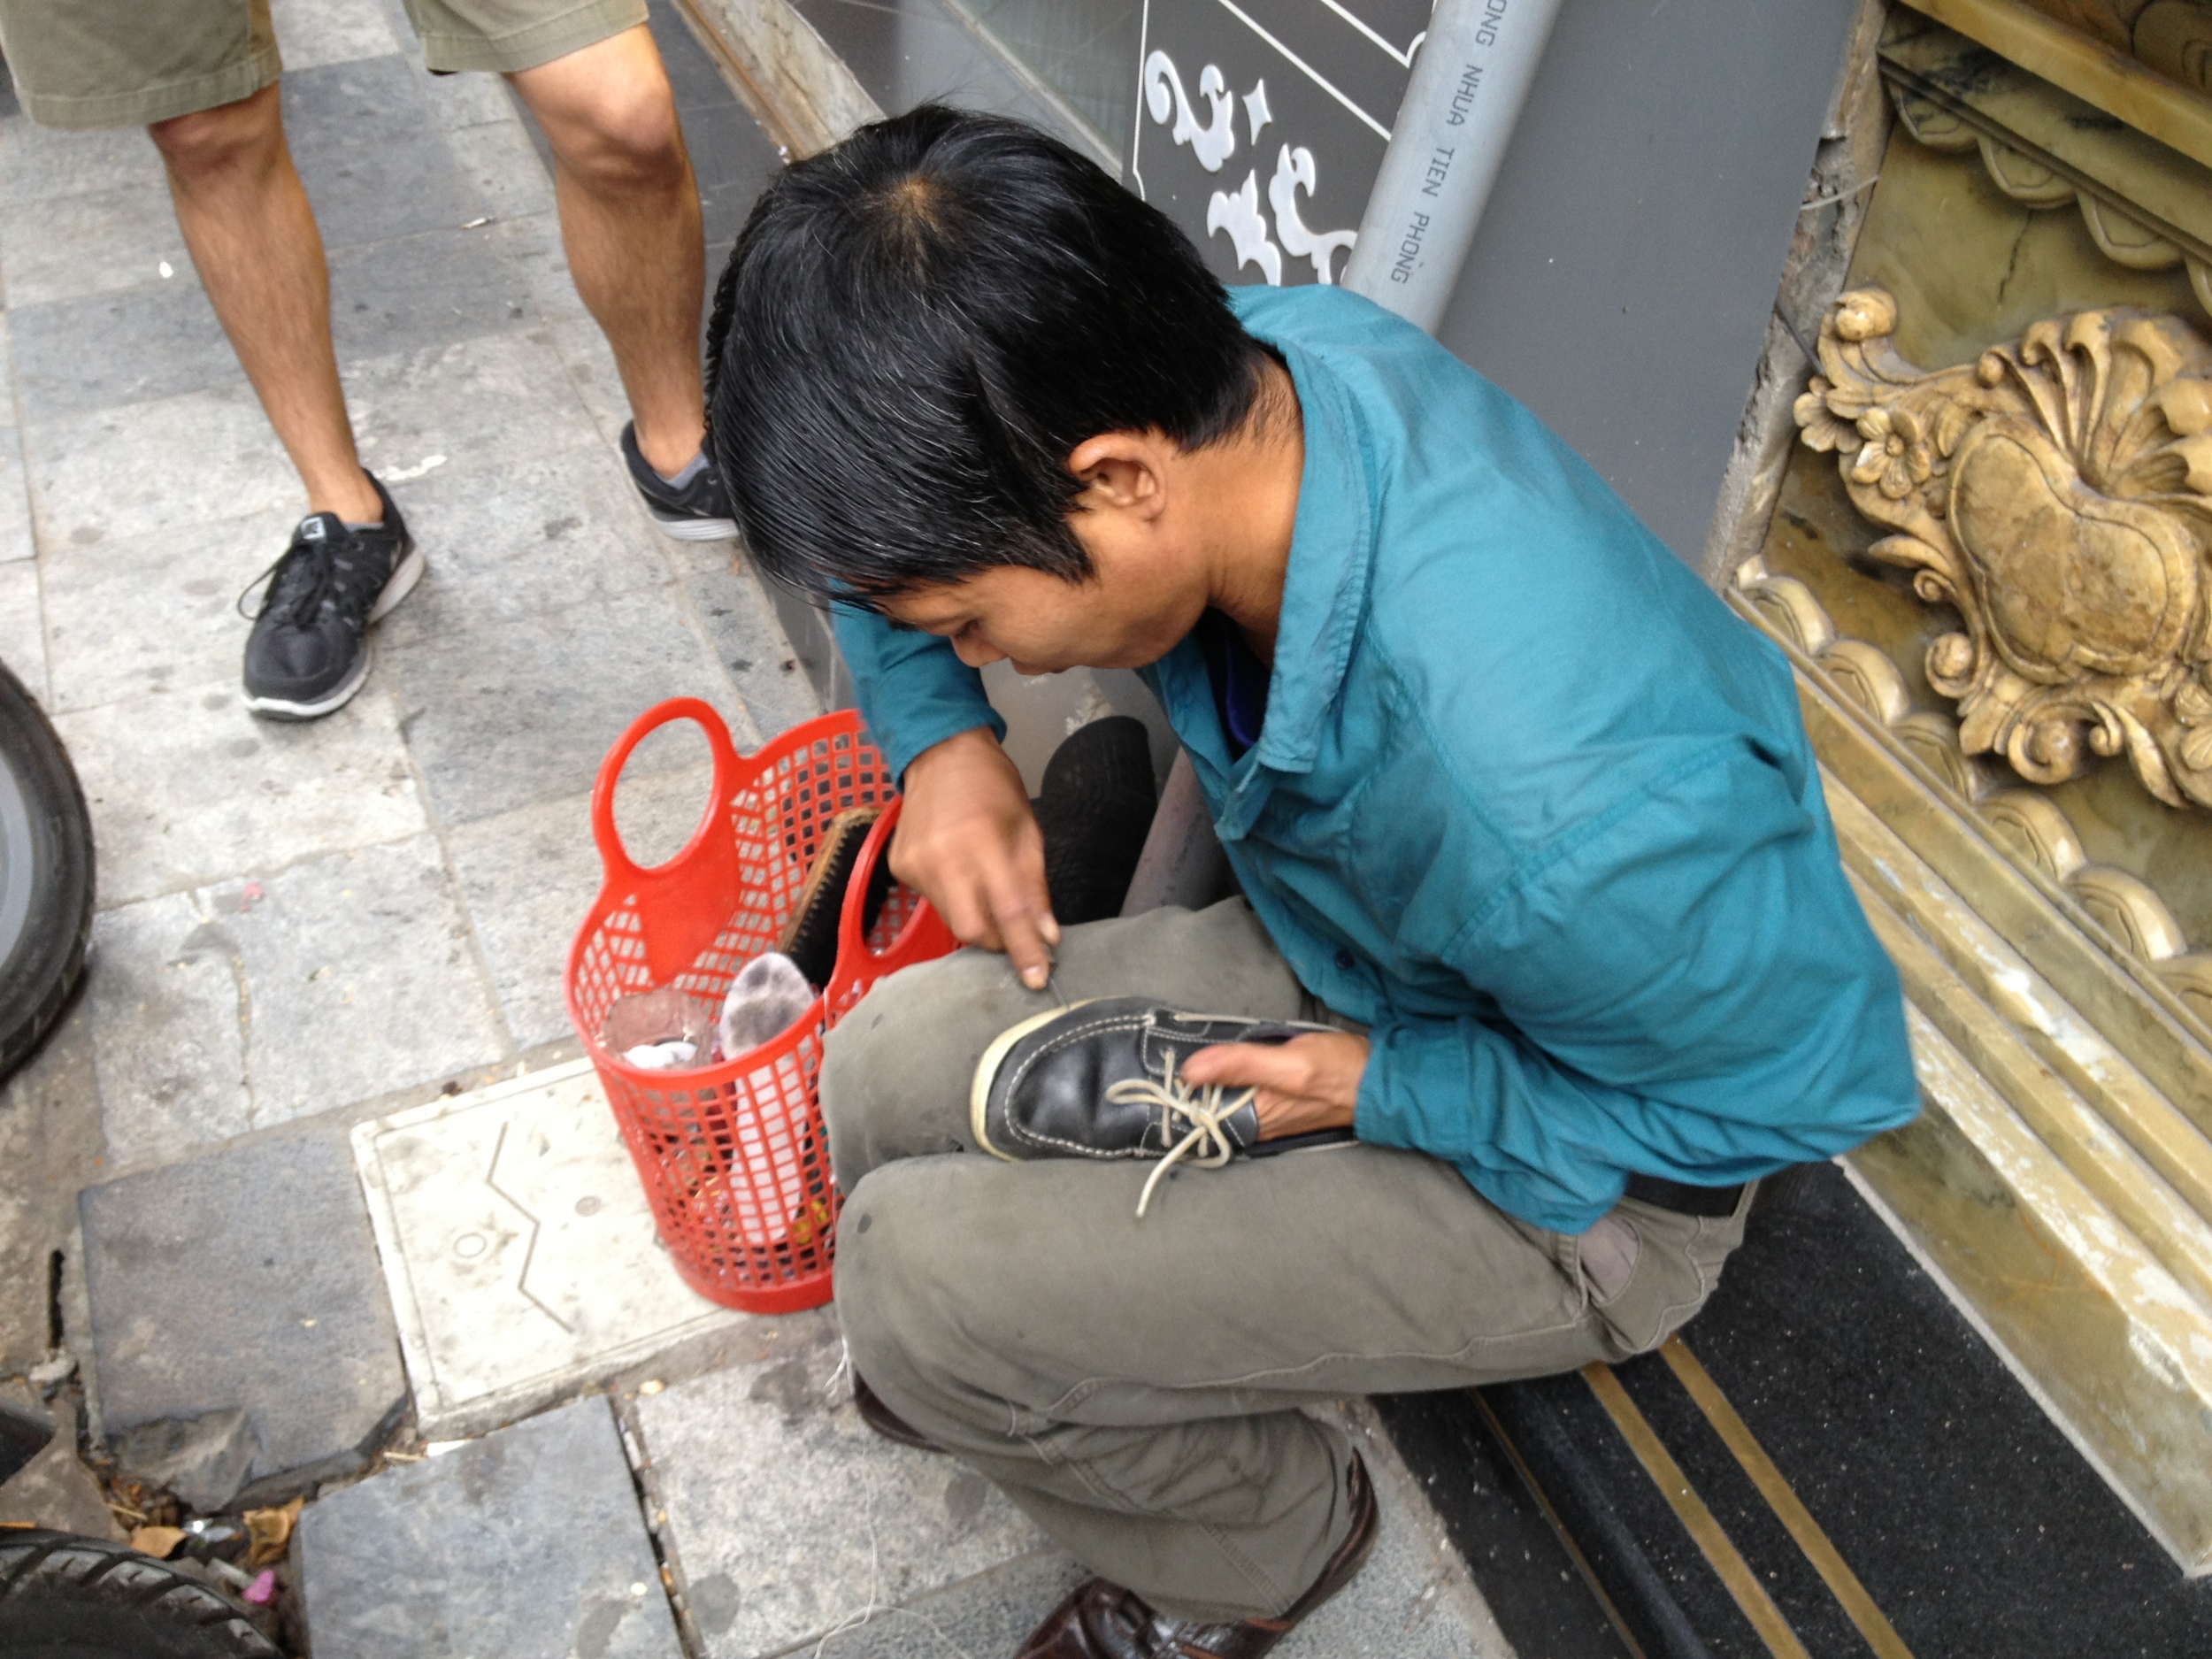 This guy pointed at a hole in Carla's shoe and demanded to fix it on the spot.